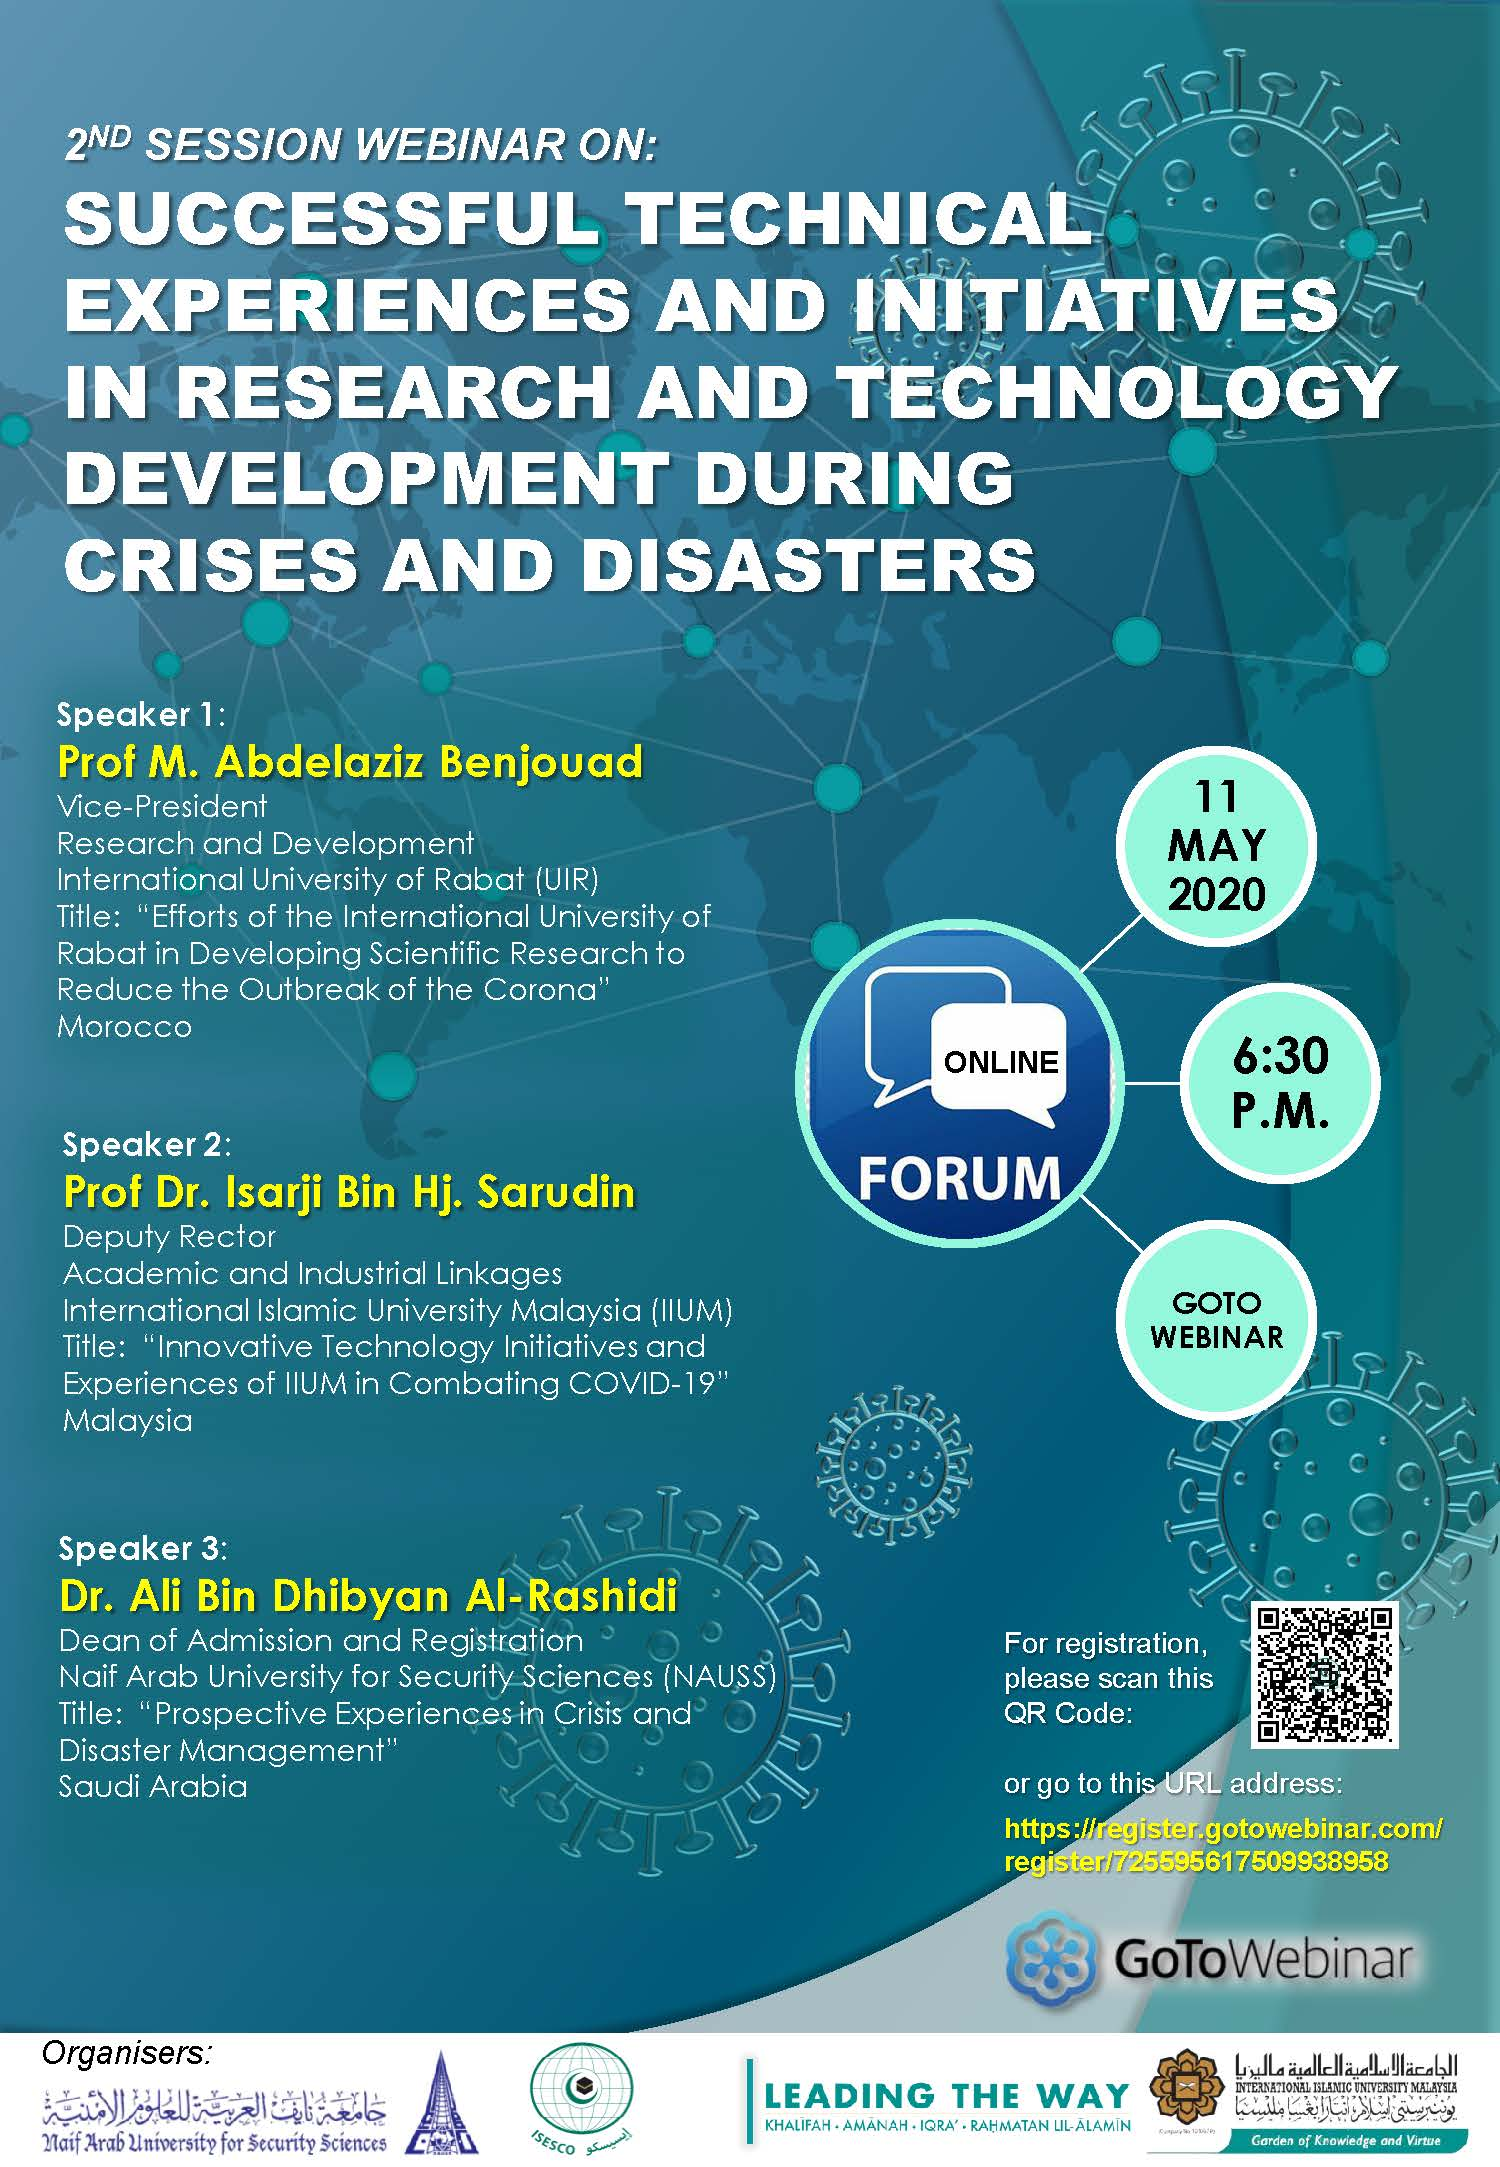 2ND SESSION WEBINAR ON: SUCCESSFUL TECHNICAL EXPERIENCES AND INITIATIVES IN RESEARCH AND TECHNOLOGY DEVELOPMENT DURING CRISES AND DISASTER